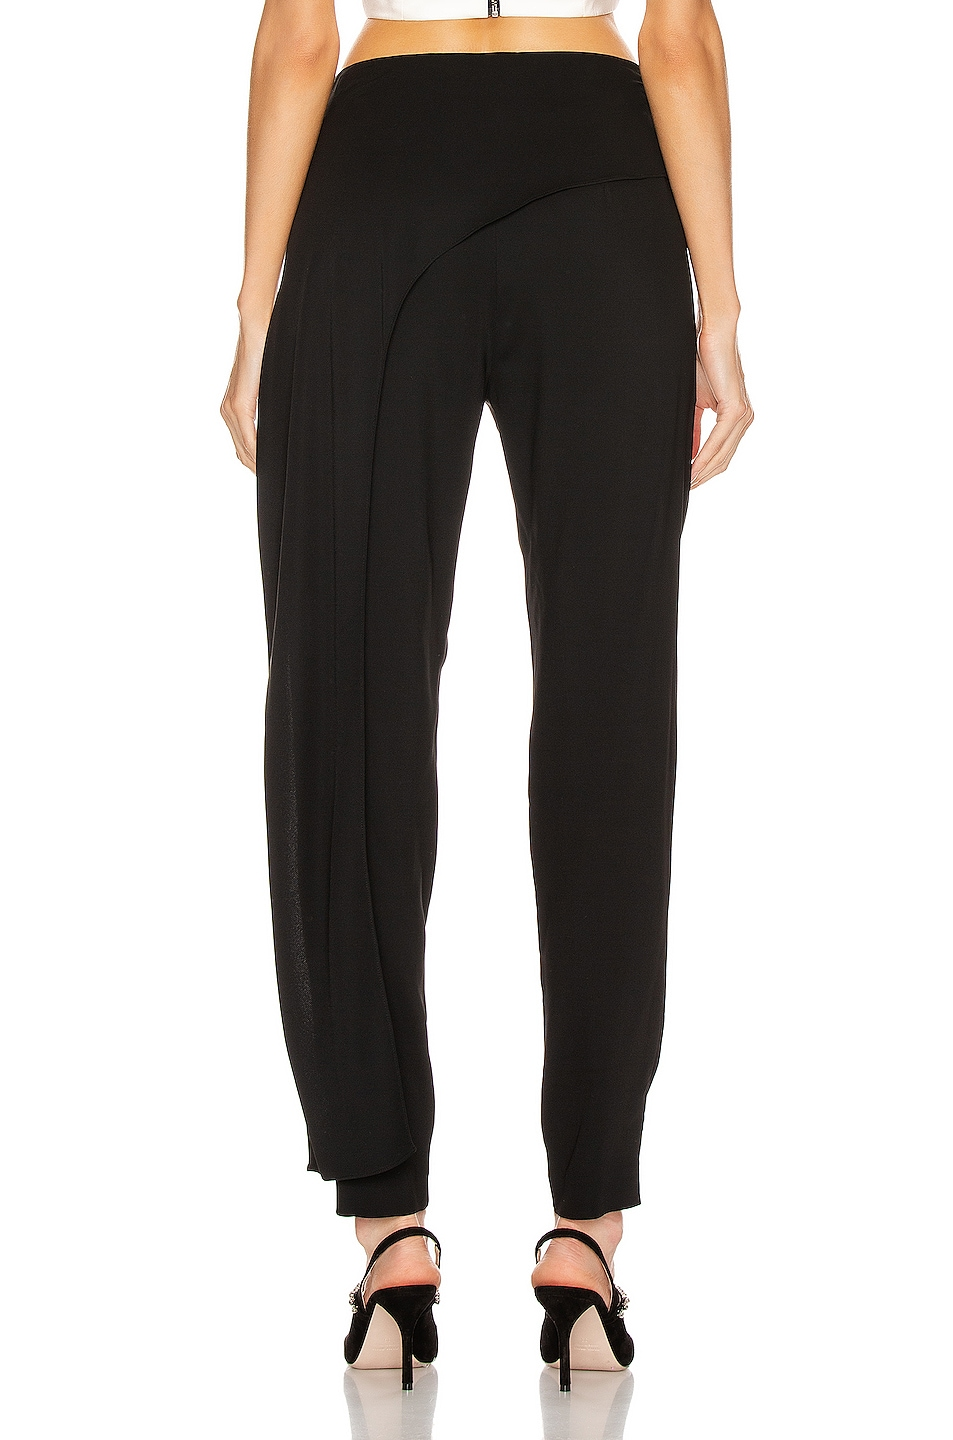 Image 4 of Michelle Mason Side Drape Pant in Black